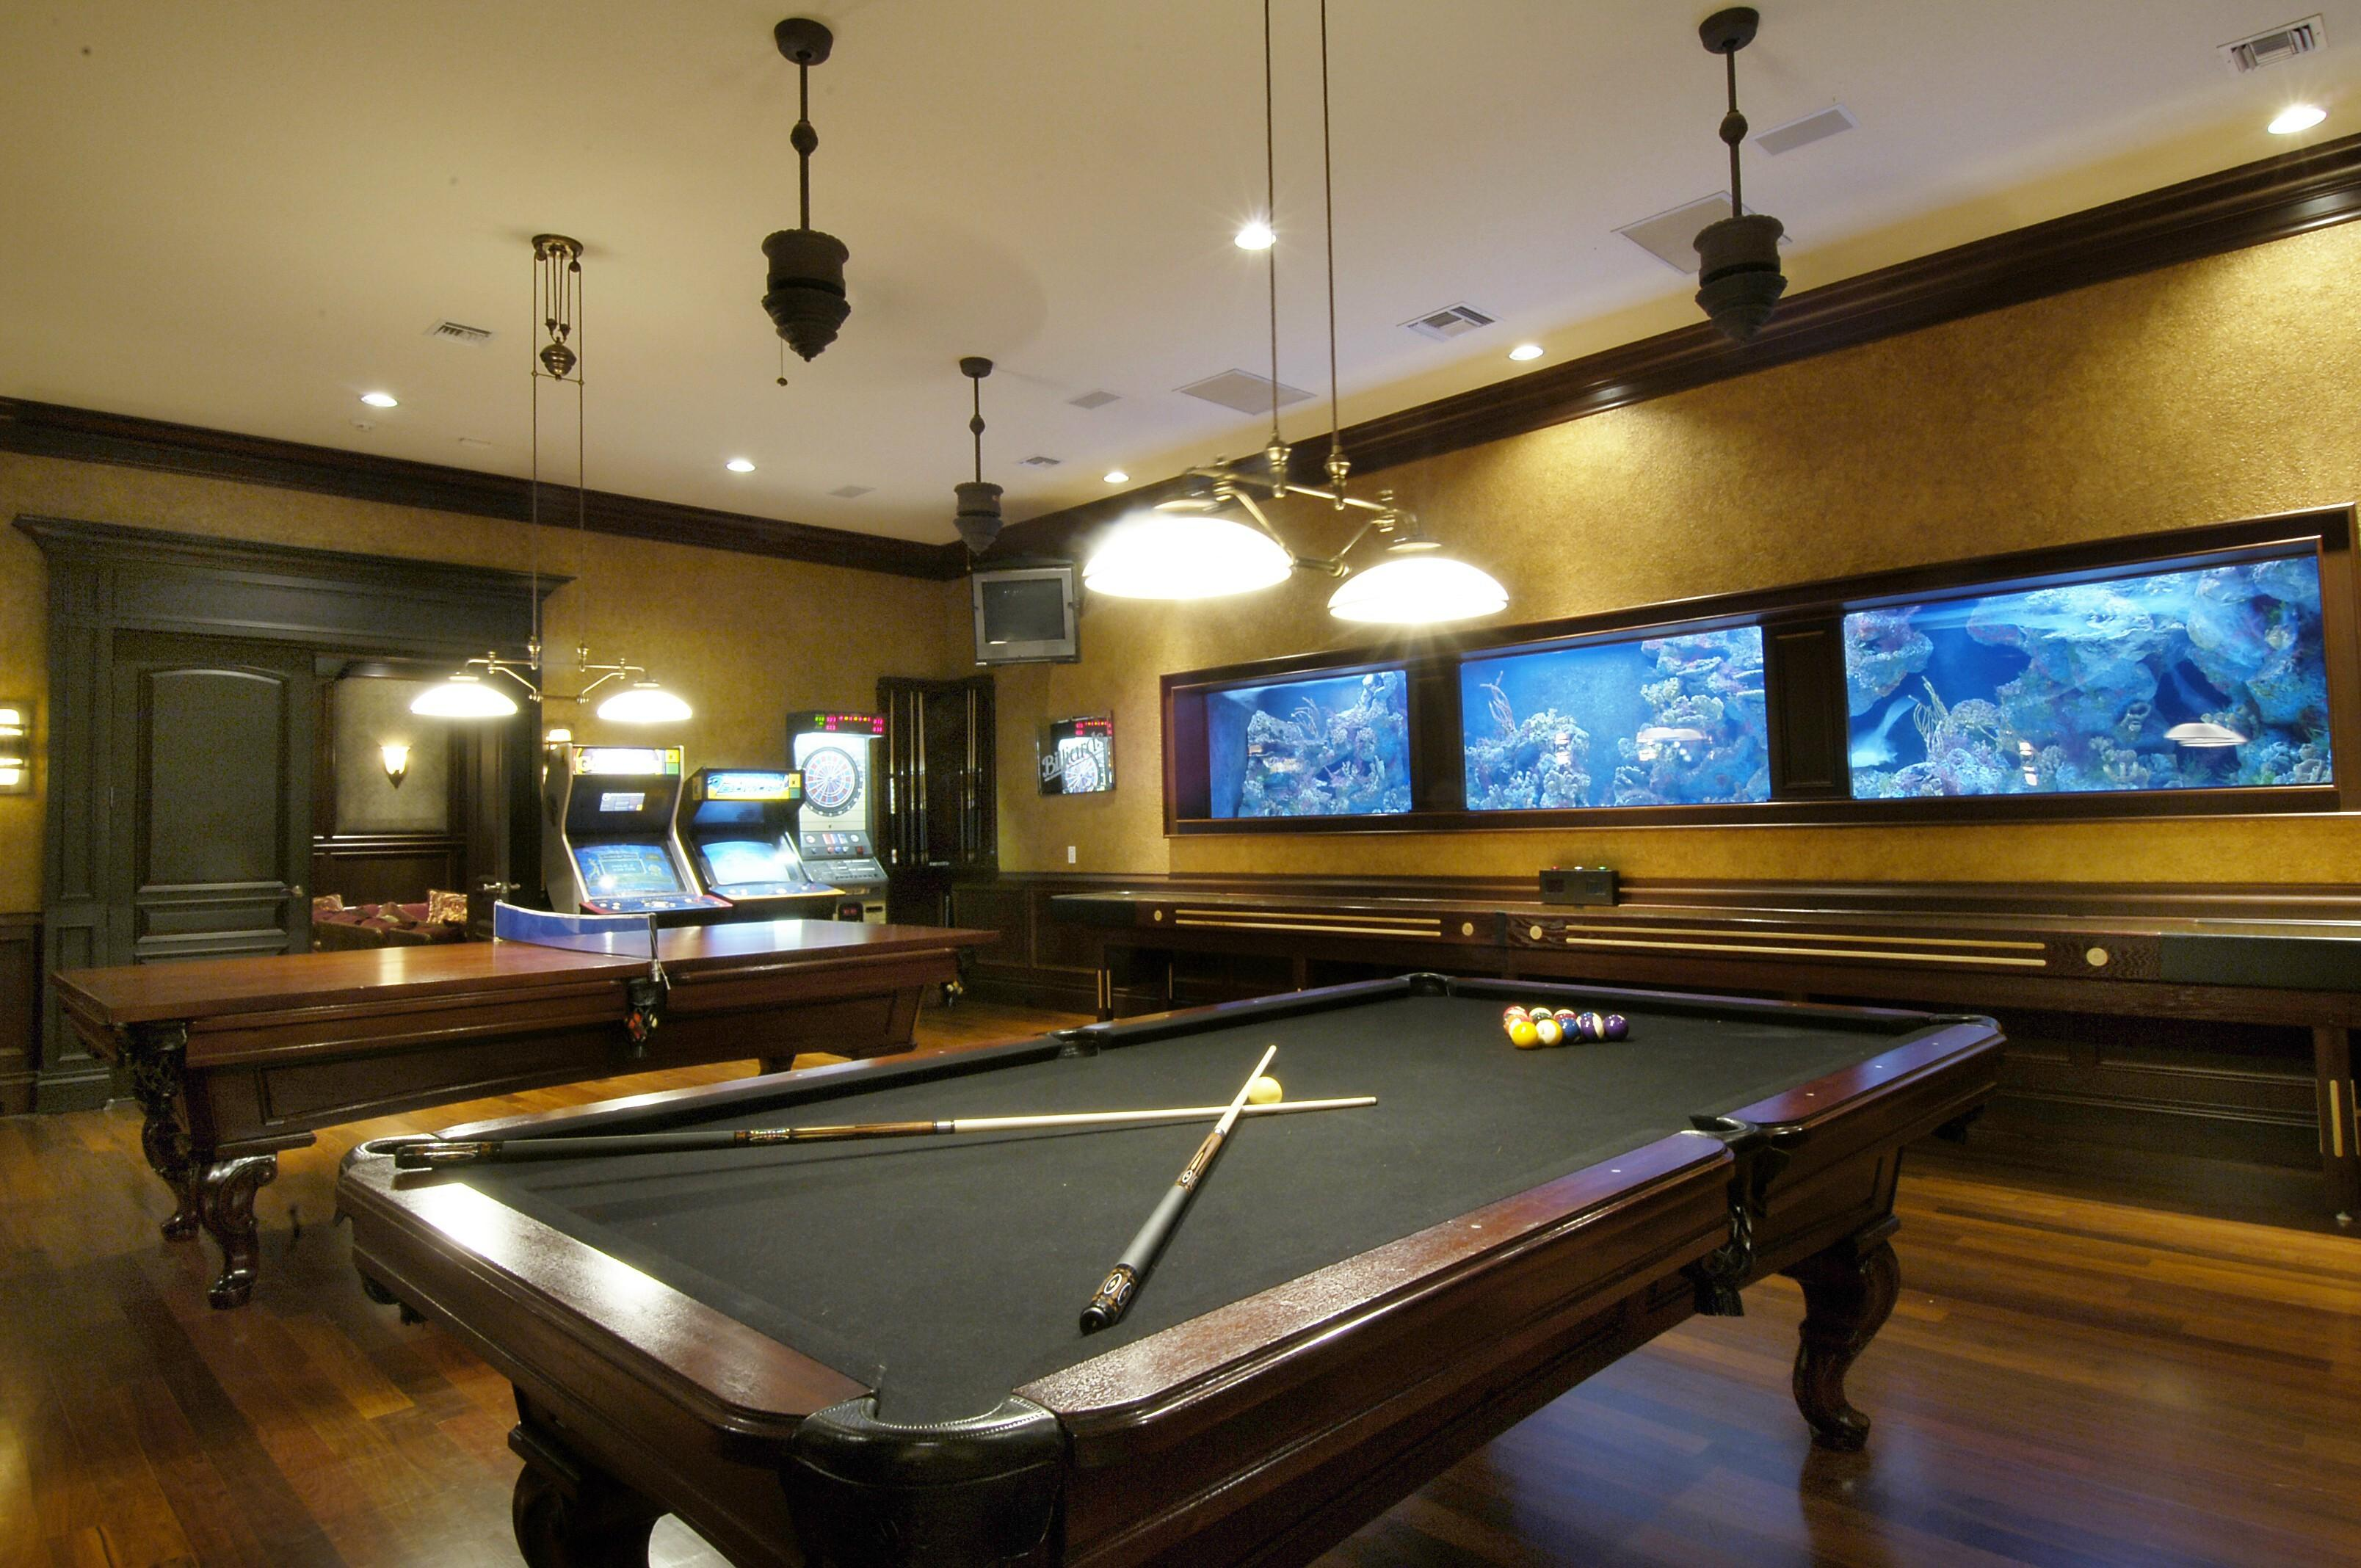 Classic Pool Table Under Ceiling Hanging Lights Wall